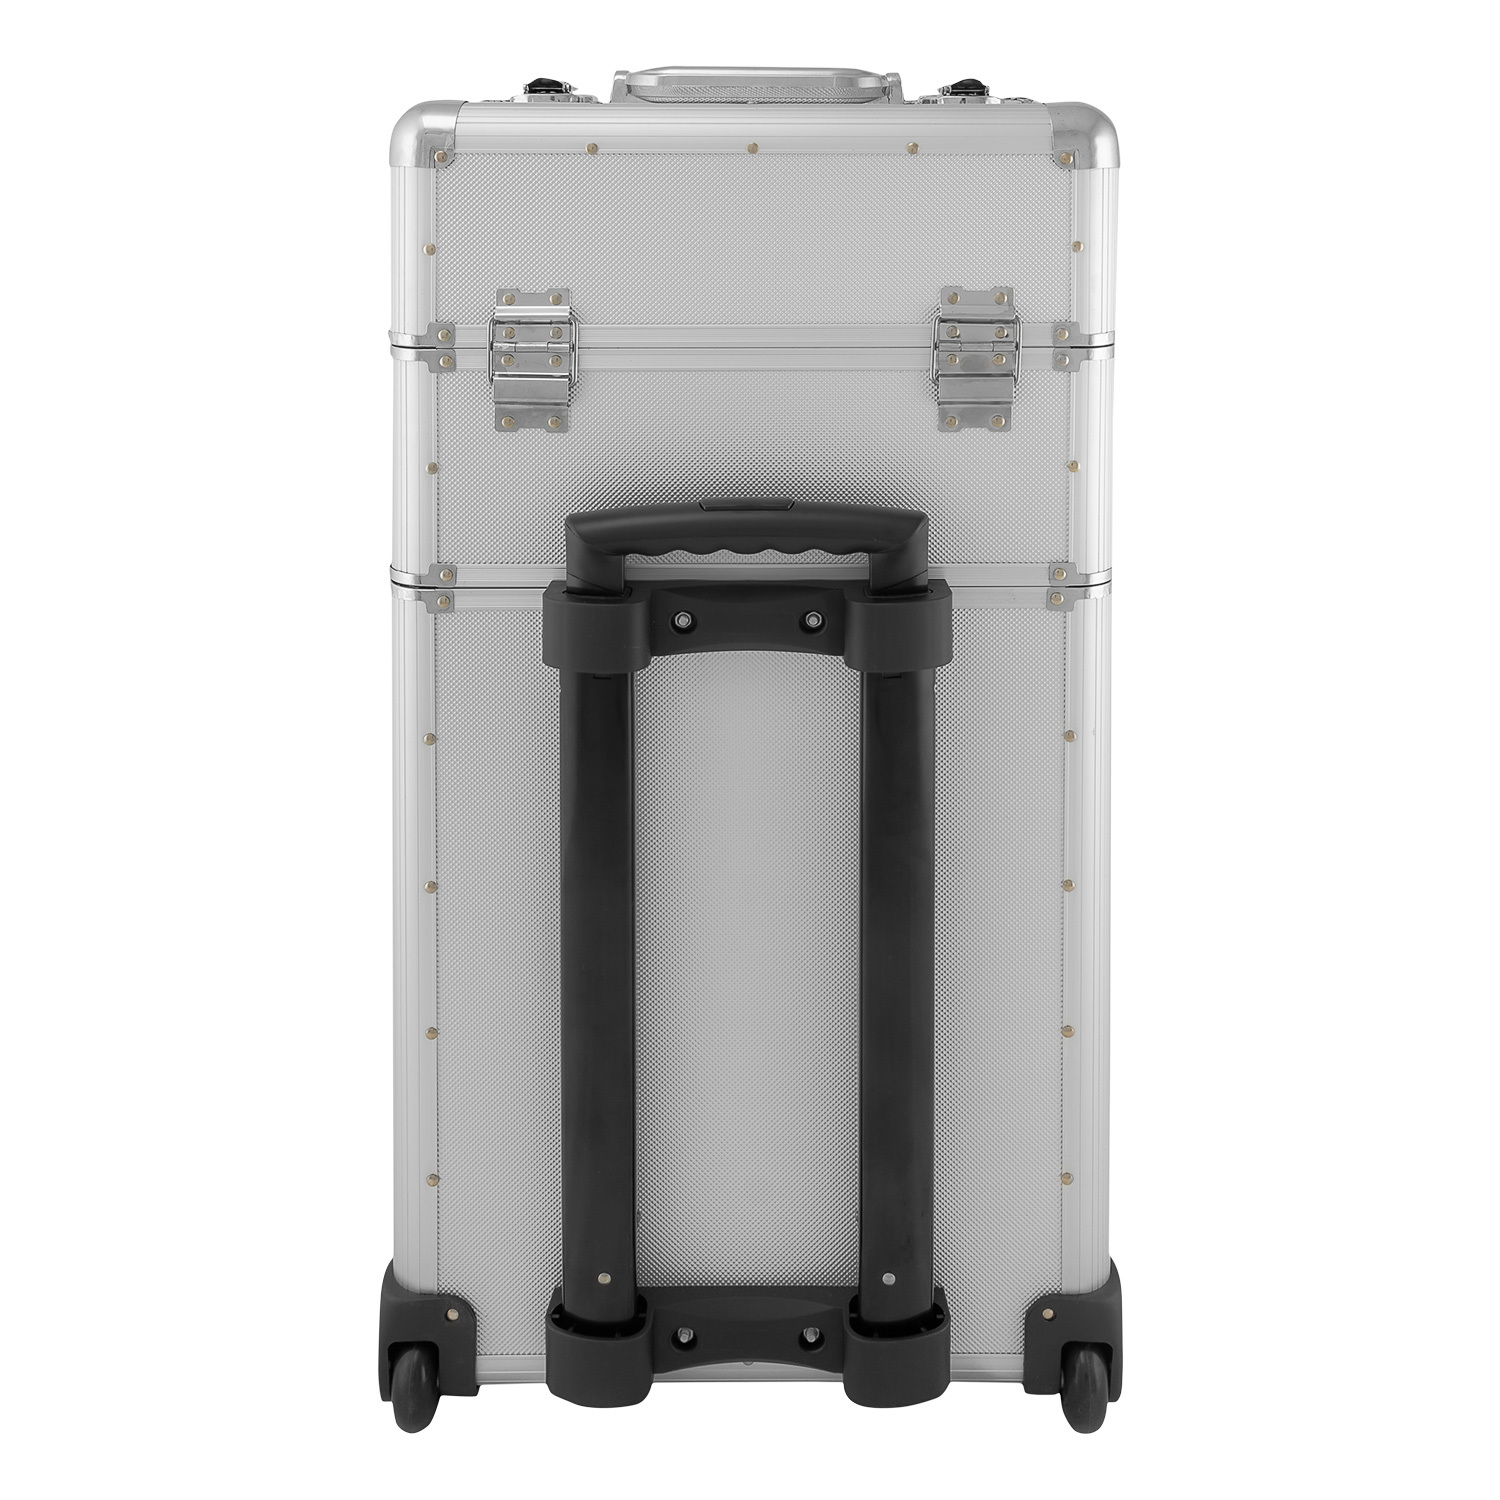 anndora aluminium koffer 2 rad trolley 60 l pilotenkoffer beauty case silber ebay. Black Bedroom Furniture Sets. Home Design Ideas